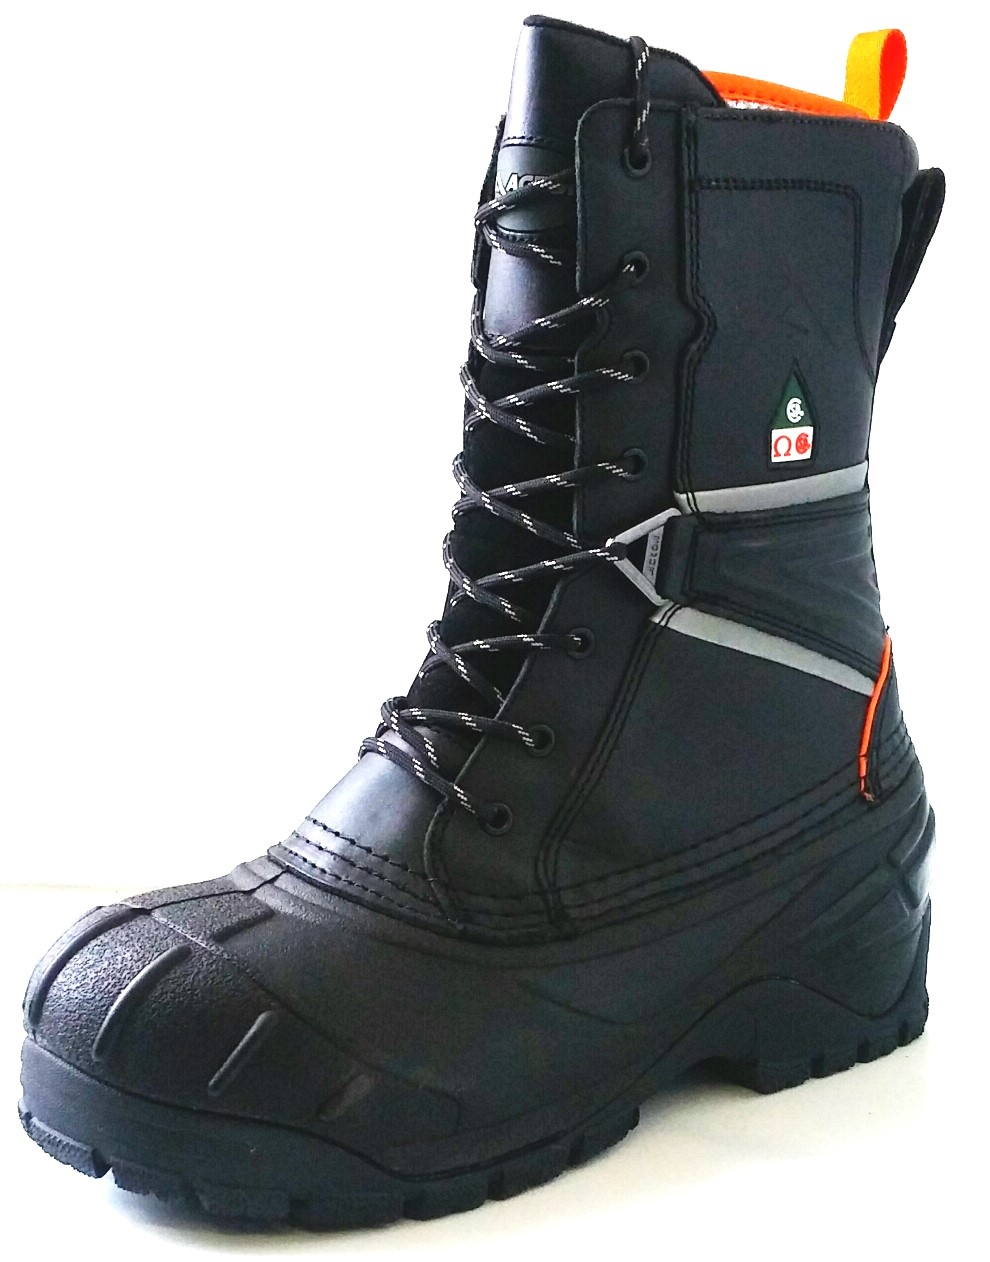 Acton Fighter boot